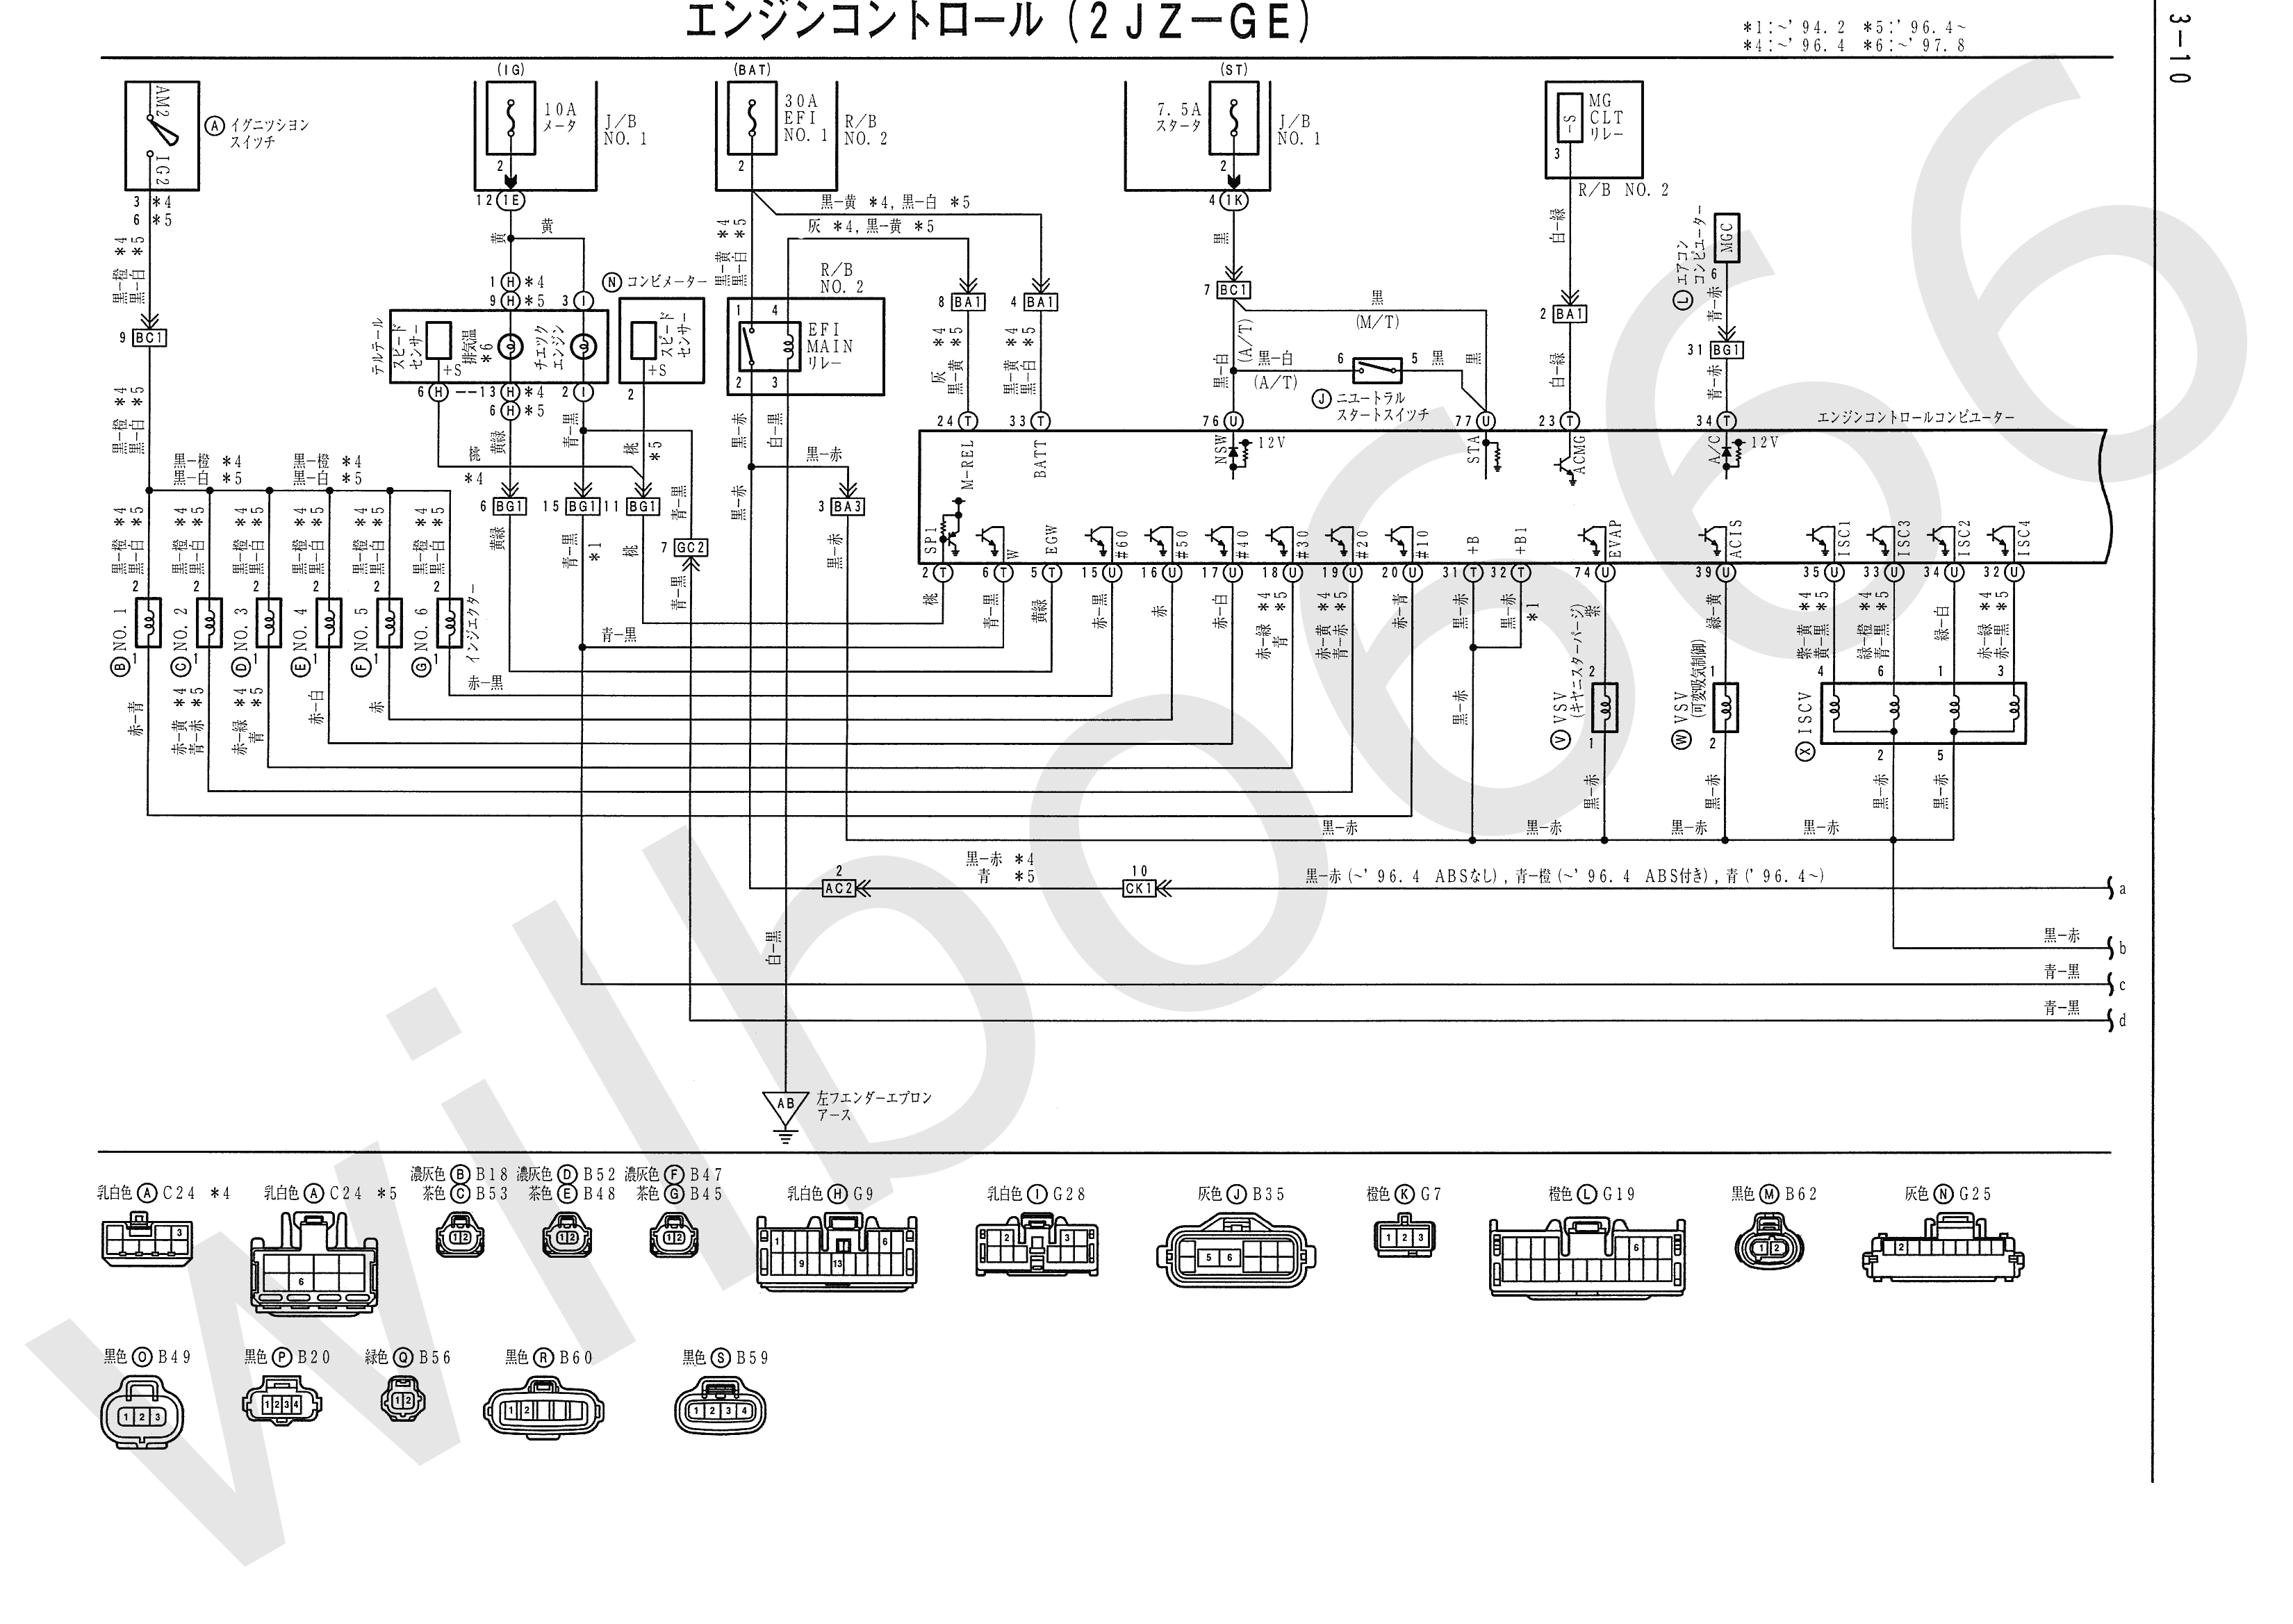 JZA80 Electrical Wiring Diagram 6742505 3 10 wilbo666 2jz ge jza80 supra engine wiring toyota electrical wiring diagram at readyjetset.co